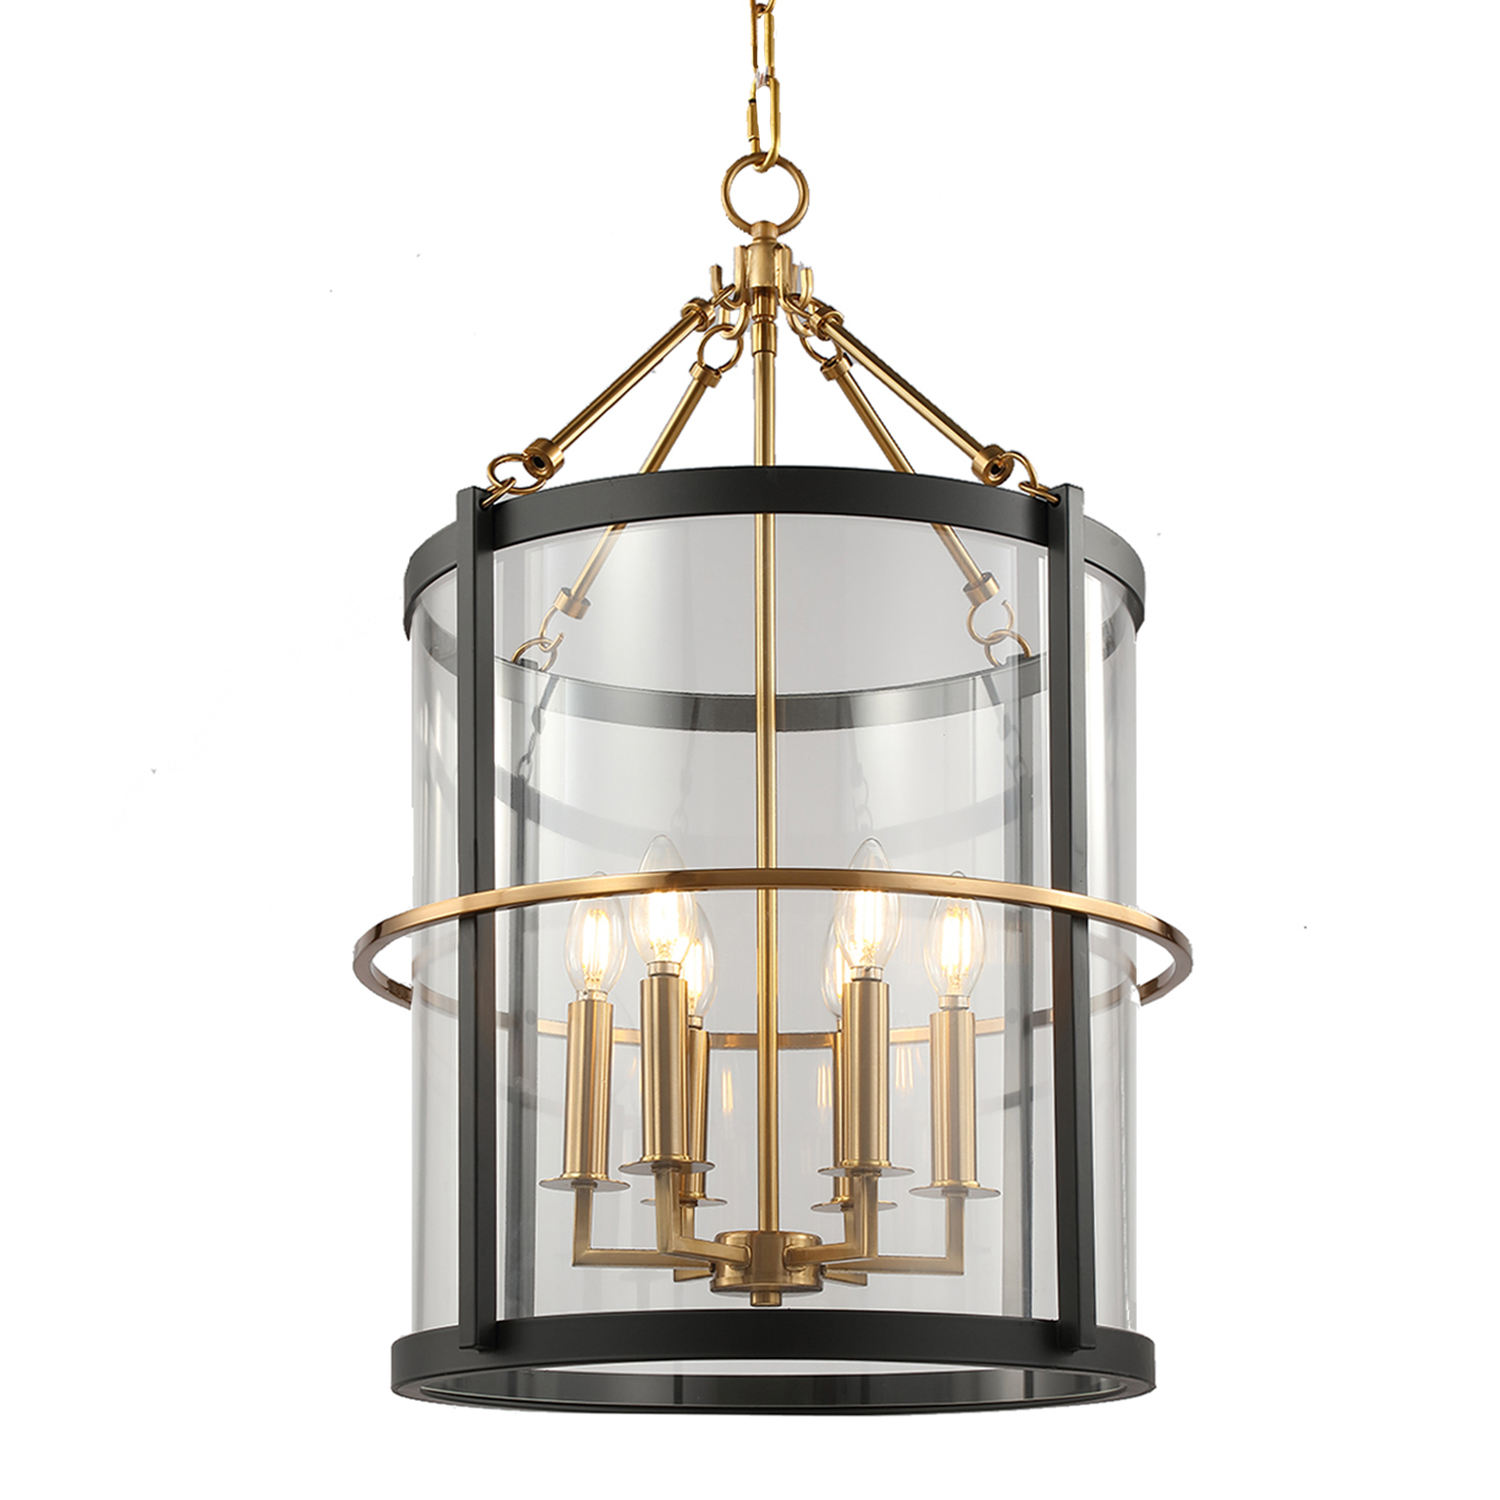 2020 Modern Iron Black & Brass Finish Clear Glass Pendant Lamp Black Pendant Lights for Home Decorate your Home Ceiling Light